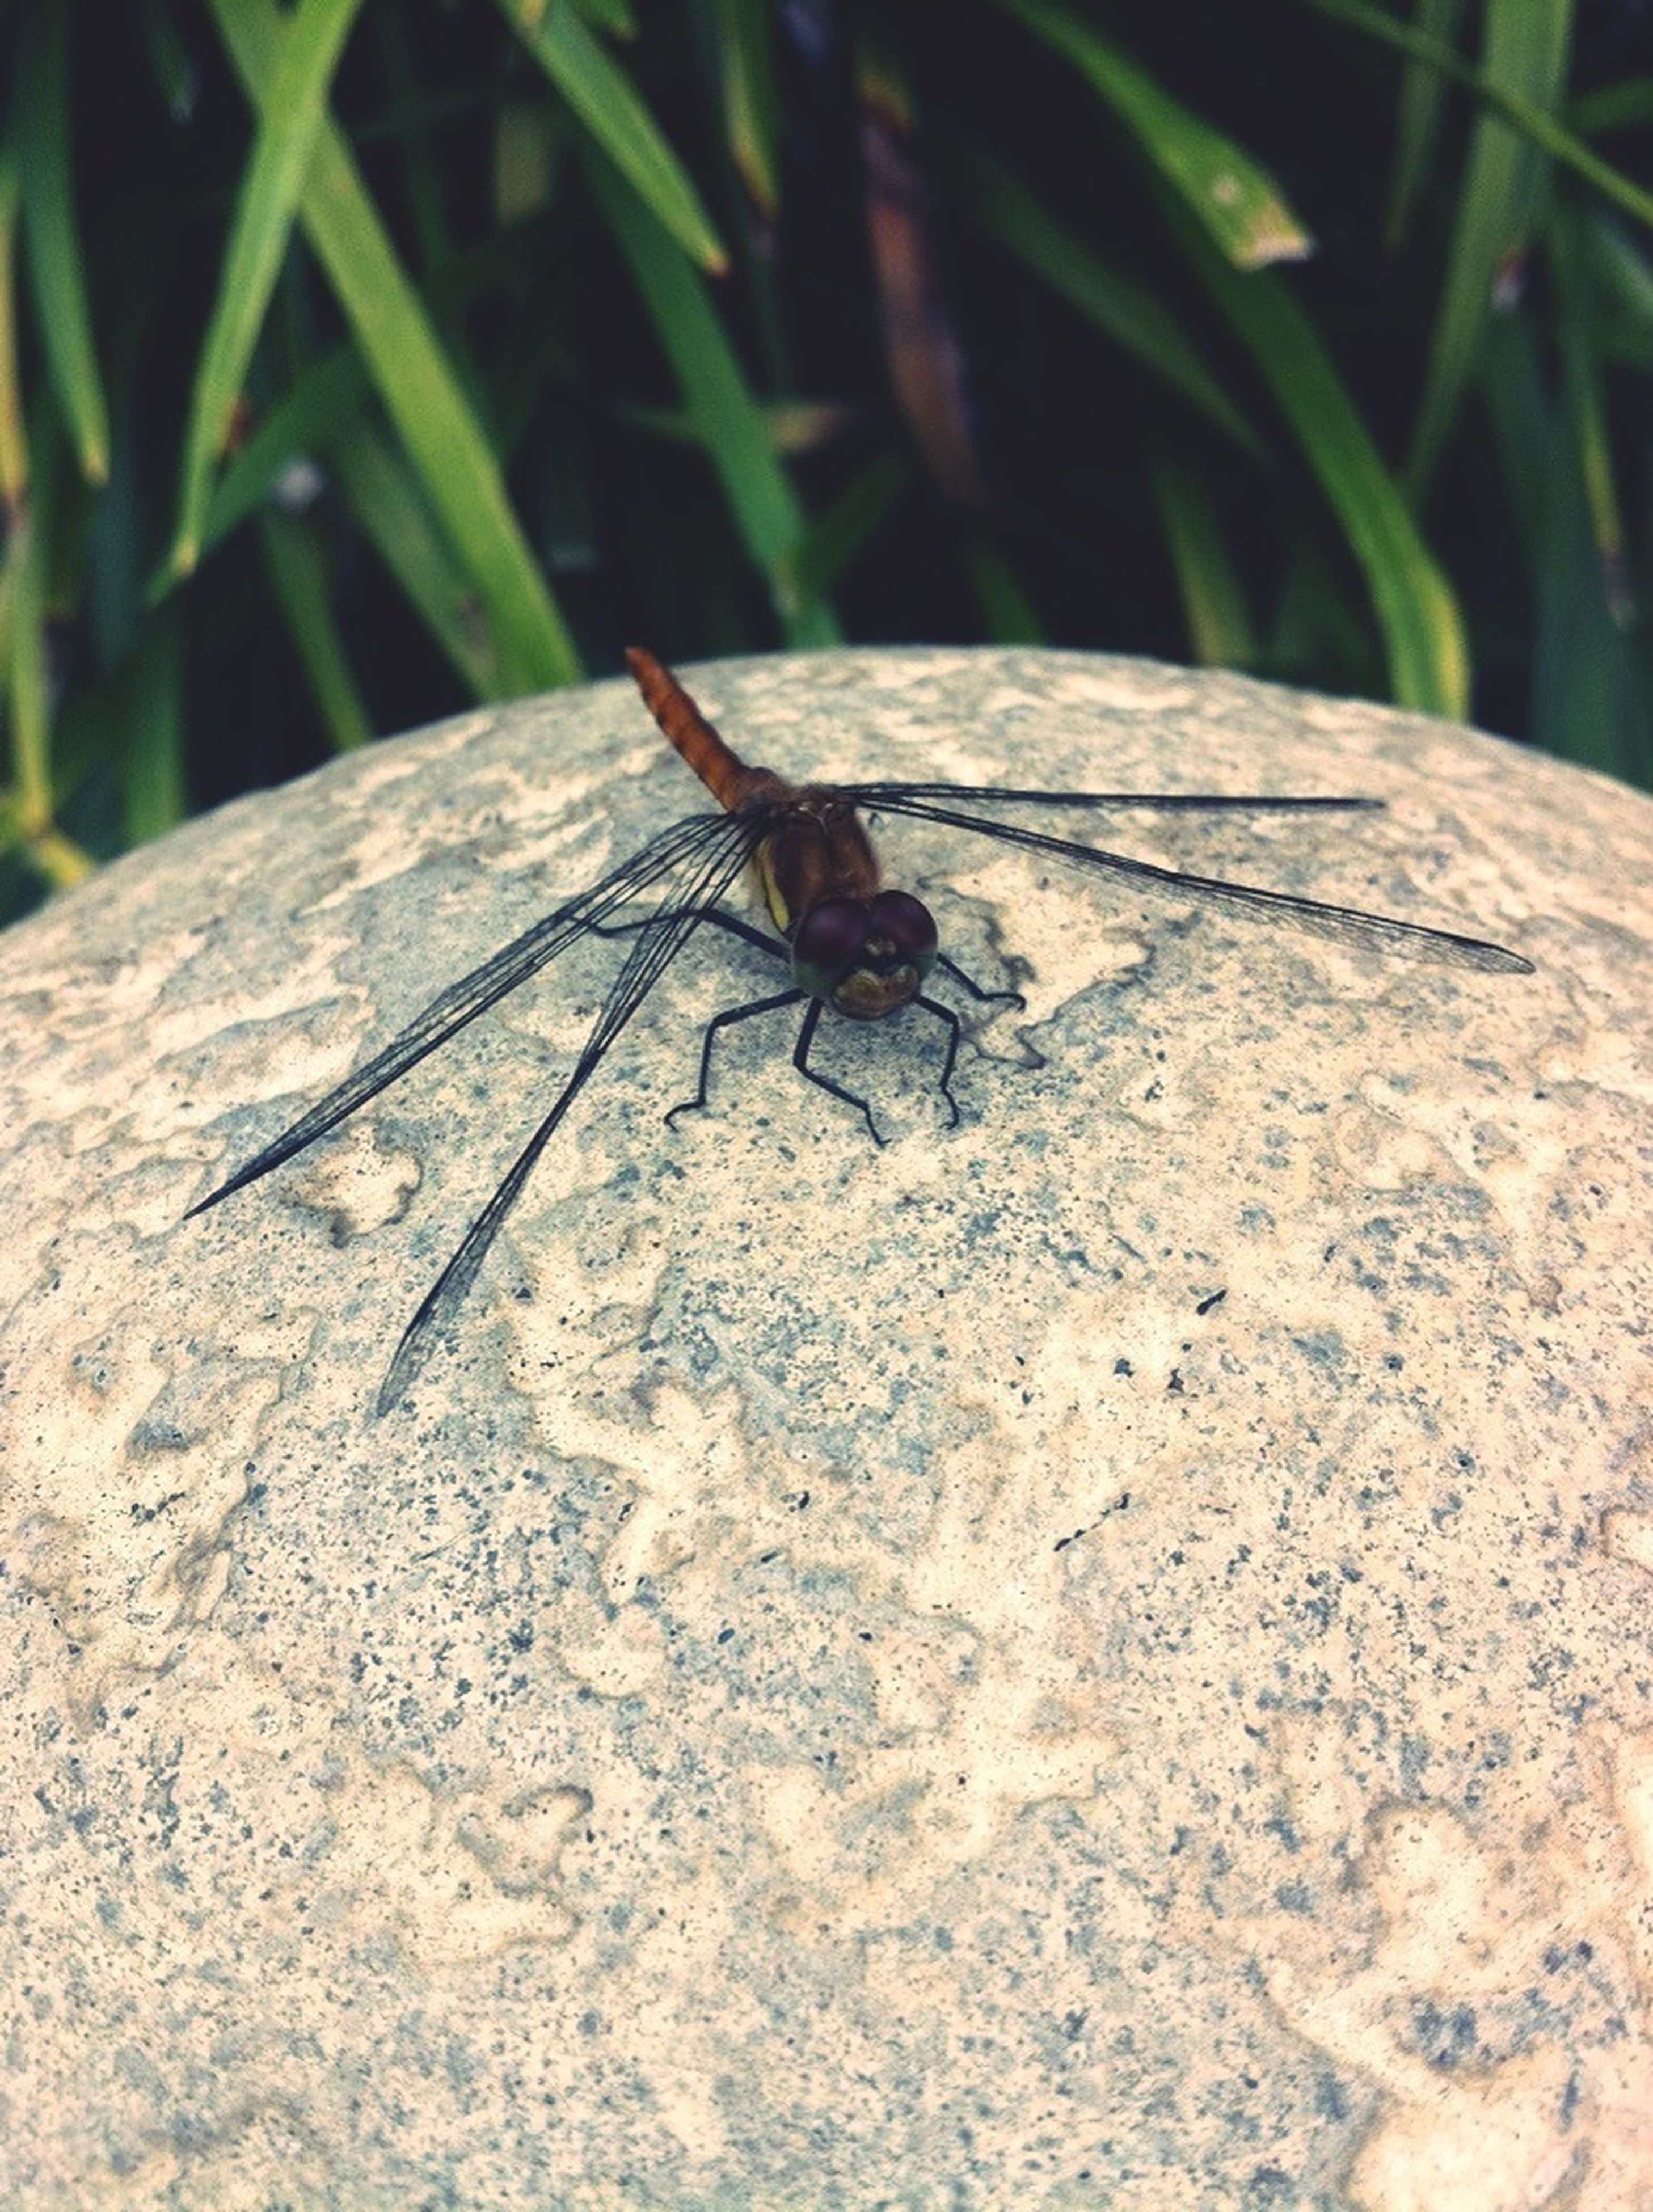 insect, one animal, animals in the wild, animal themes, wildlife, close-up, dragonfly, selective focus, animal antenna, nature, animal wing, focus on foreground, outdoors, day, high angle view, leaf, no people, full length, zoology, invertebrate